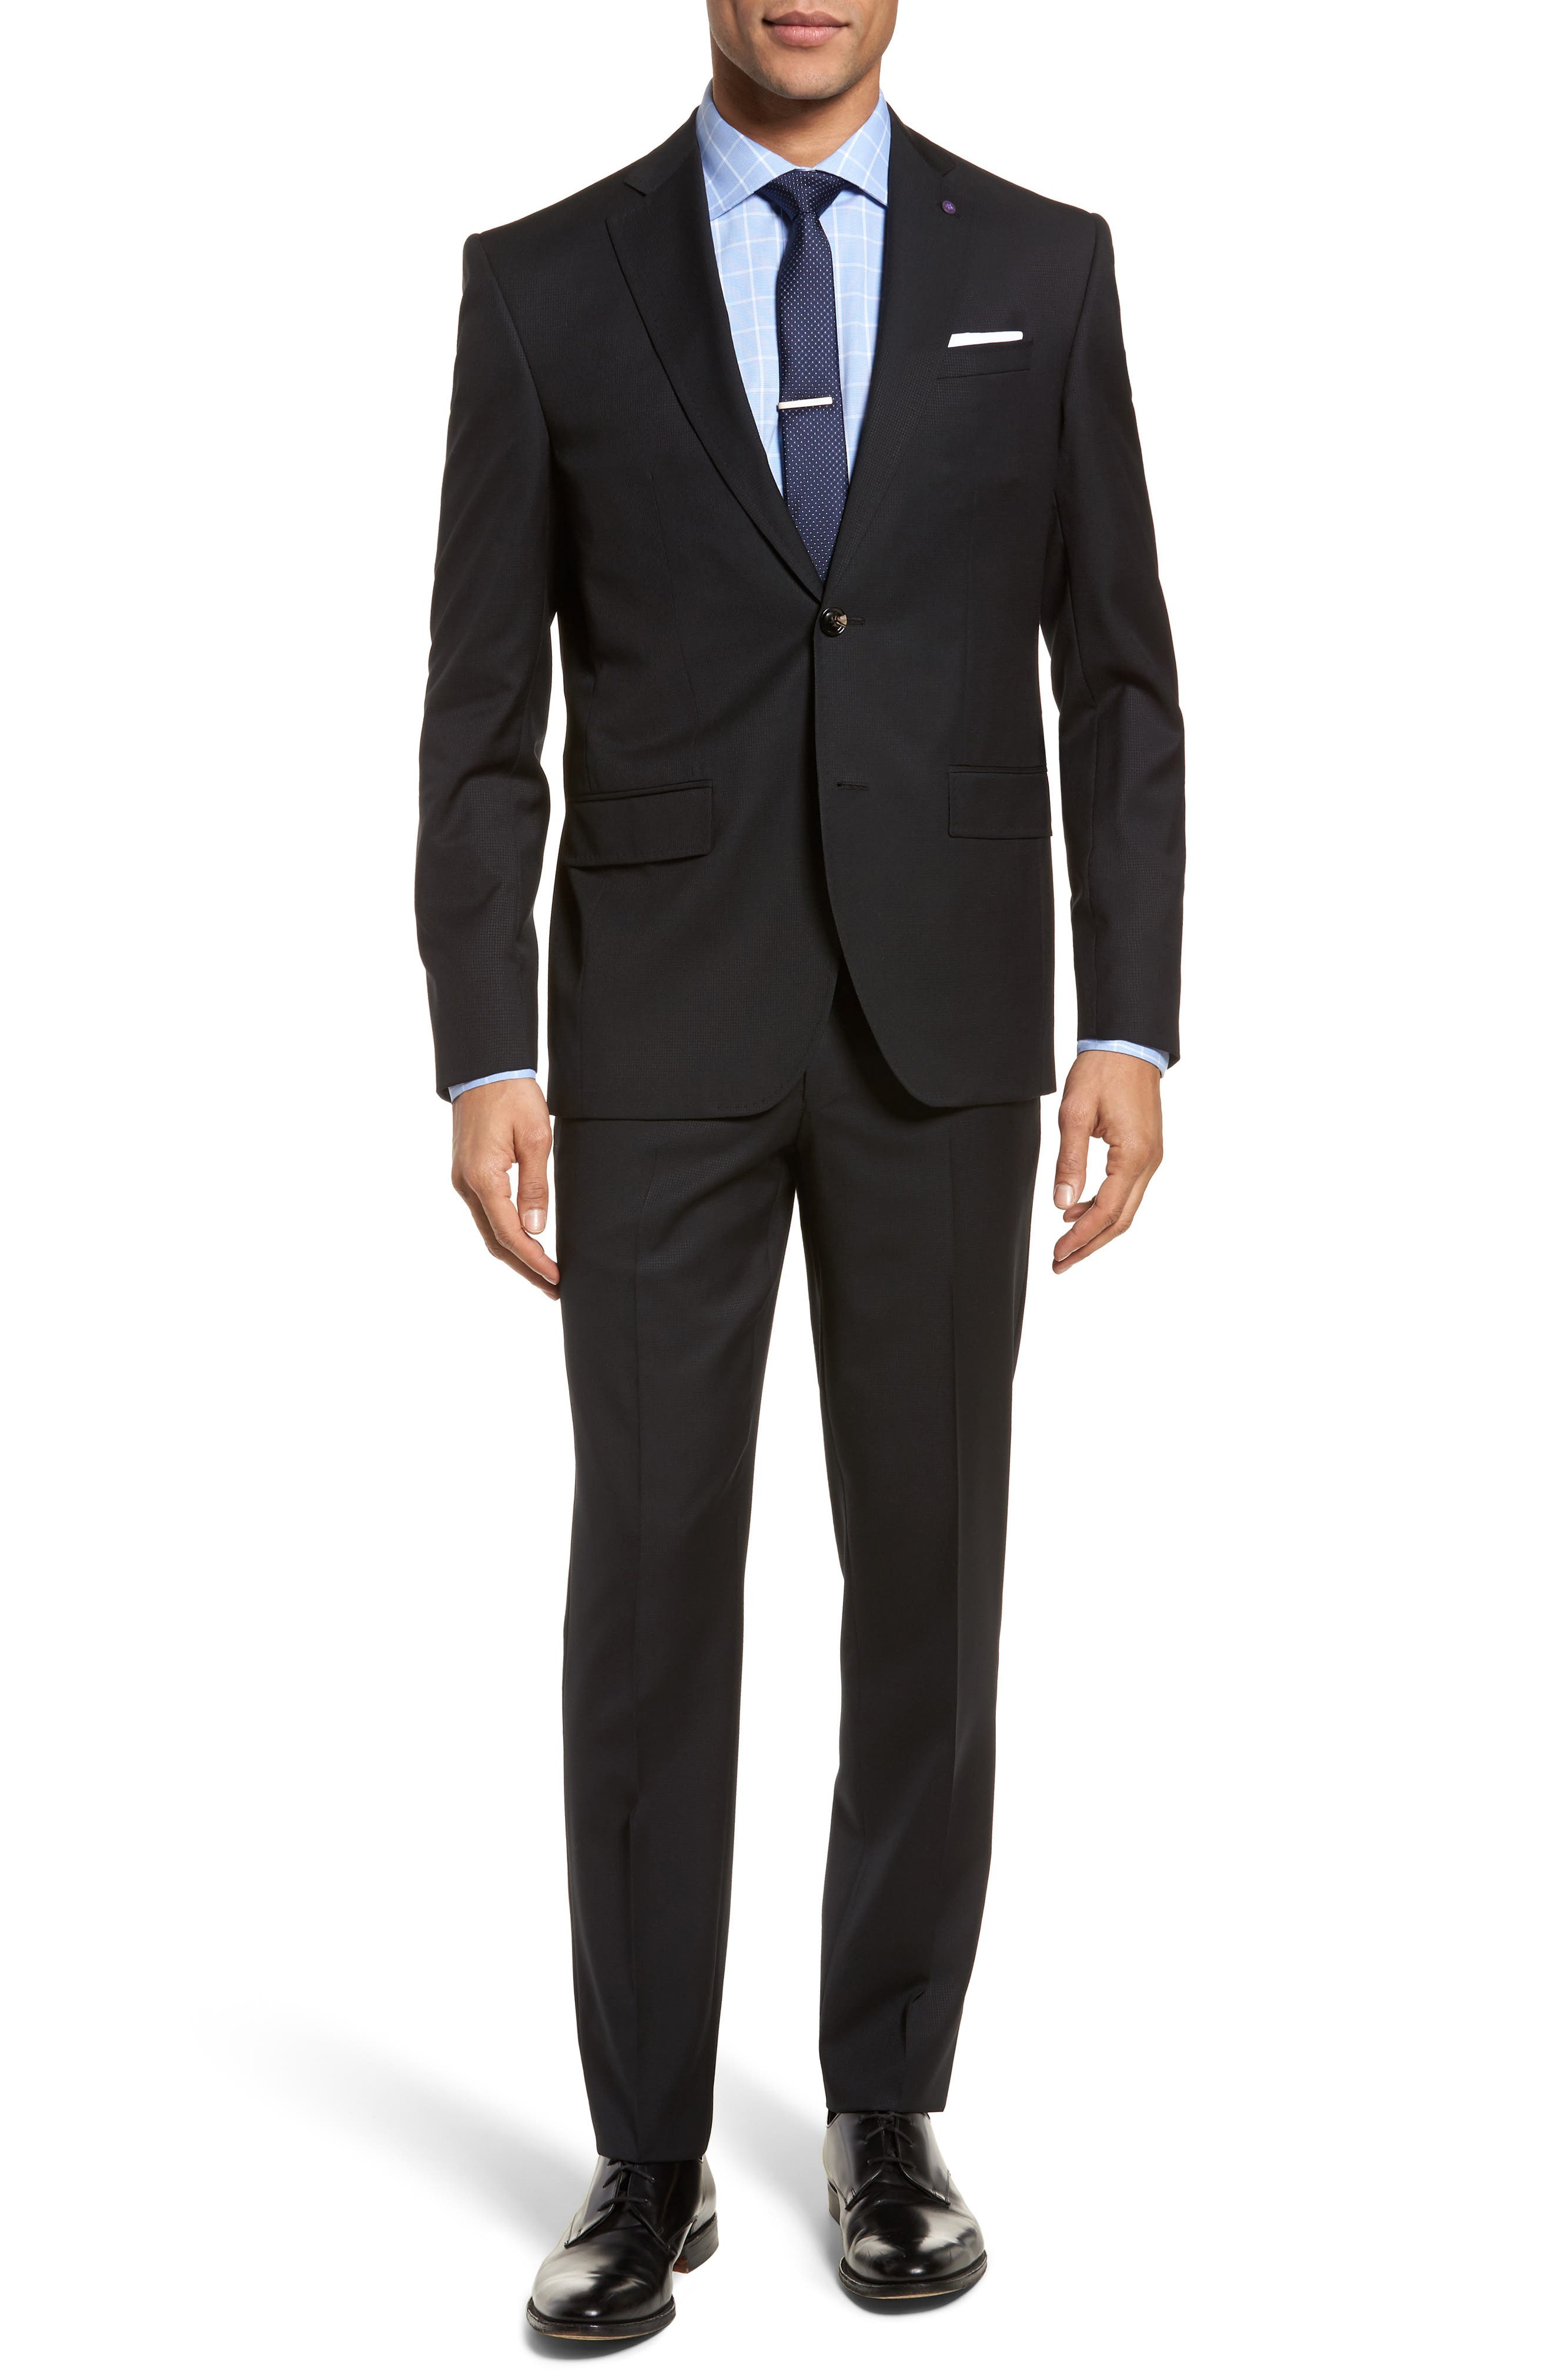 Roger Extra Slim Fit Solid Wool Suit,                             Main thumbnail 1, color,                             001